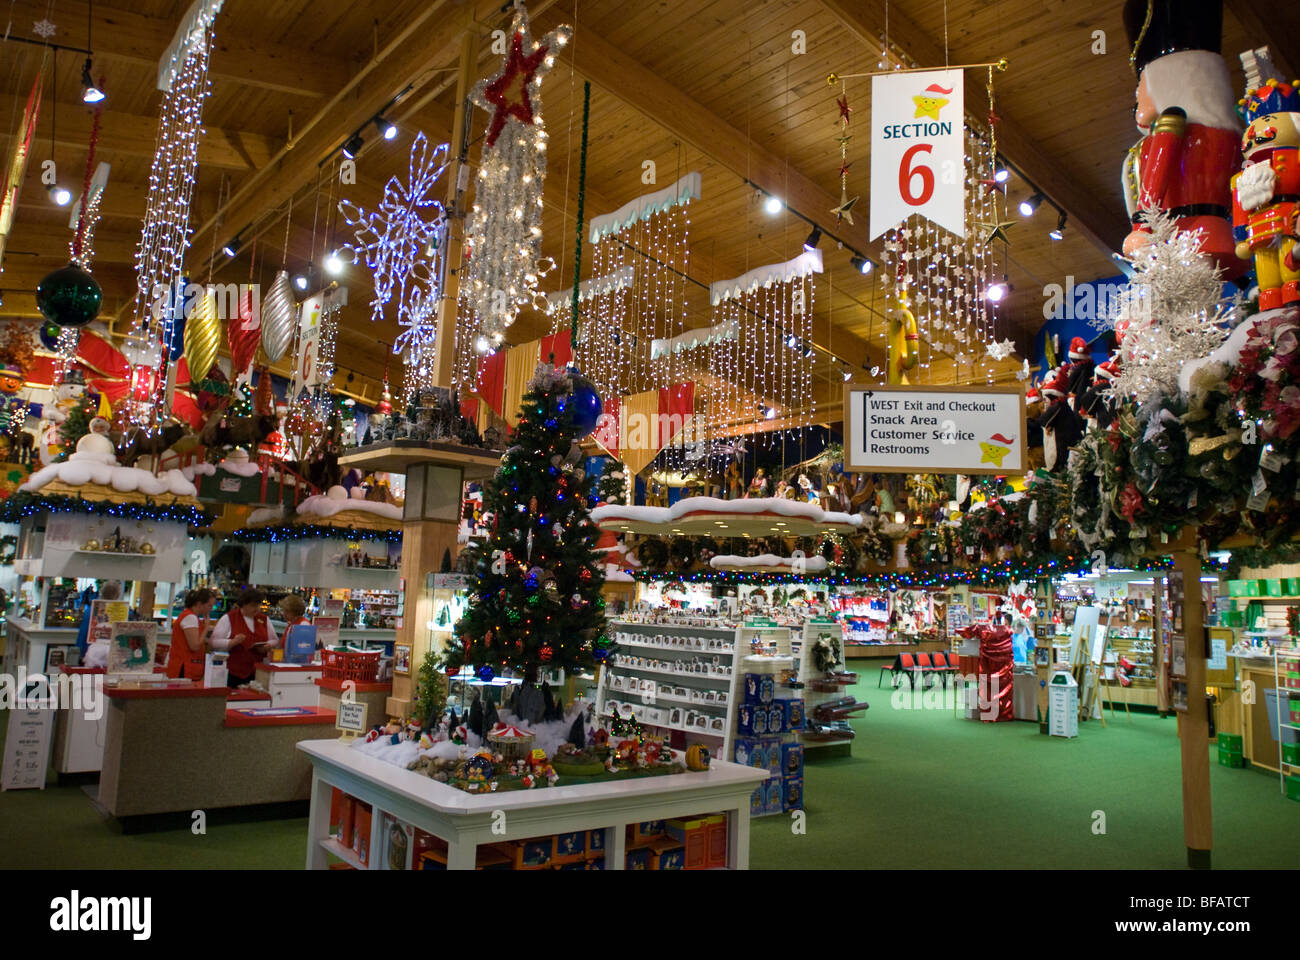 bronners christmas wonderland frankenmuth michigan united states of america stock image